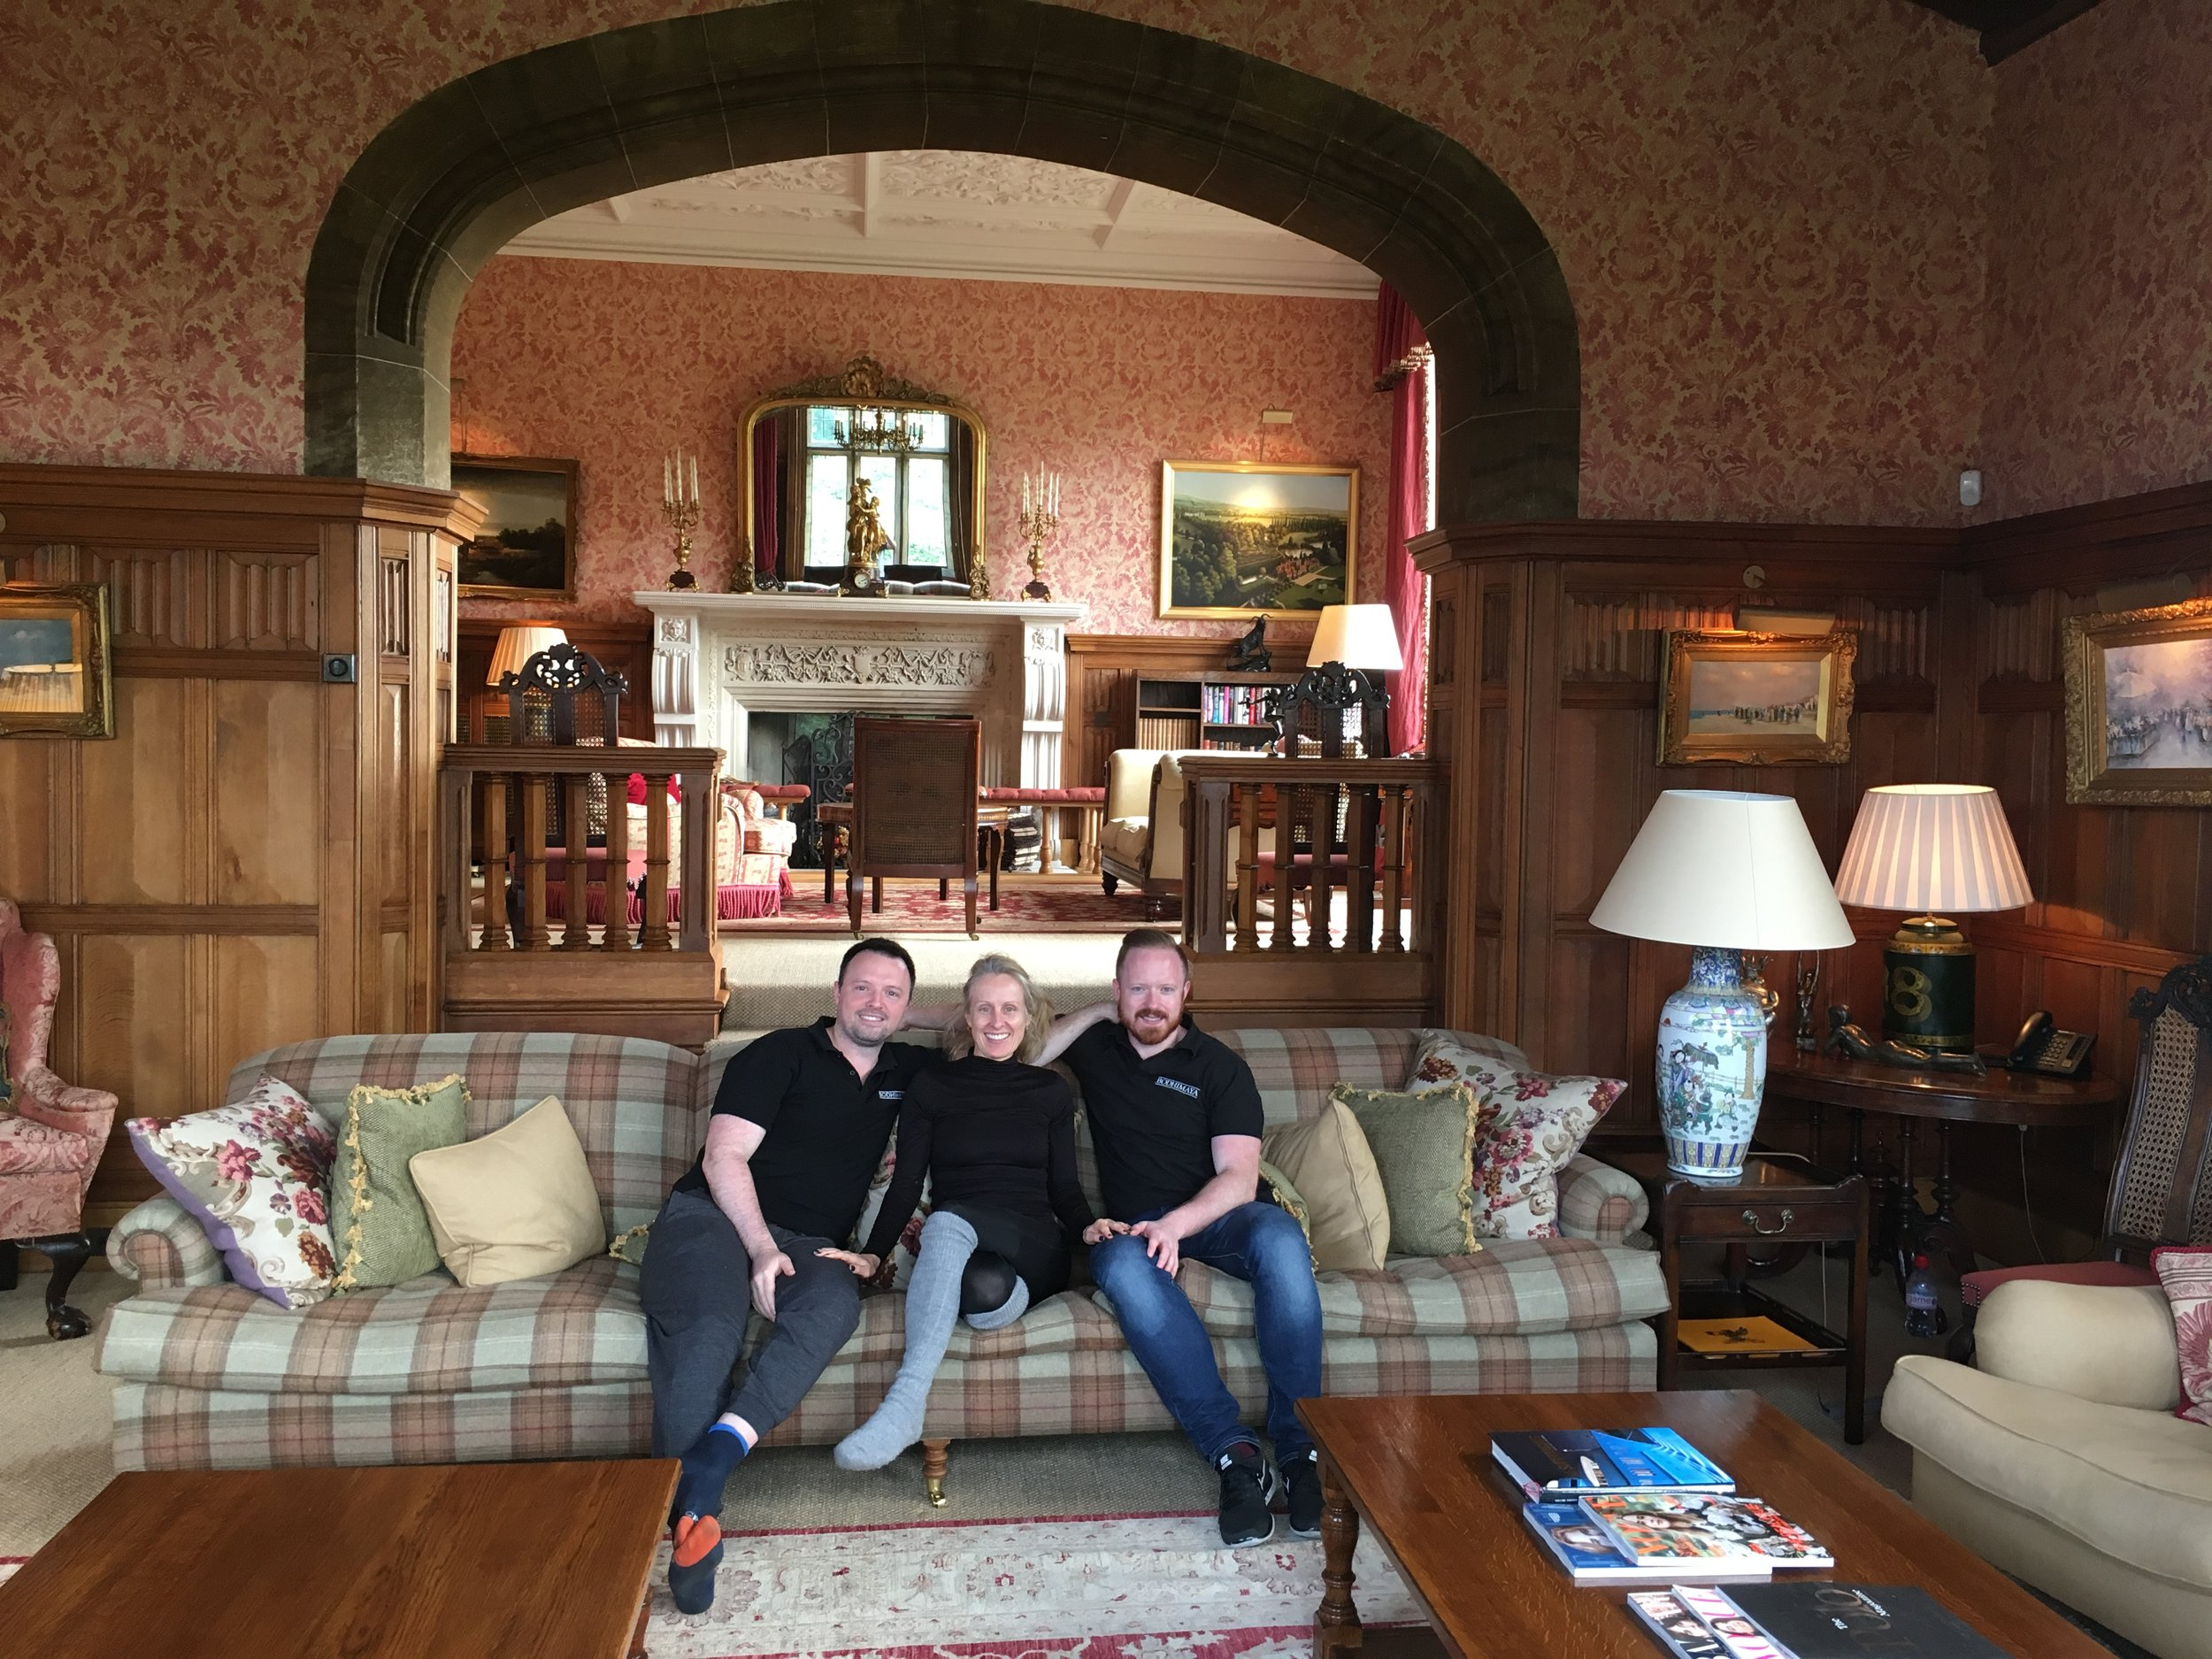 Cornelius and Daniel O'Shaughnessy and me on the Bodhimaya Retreat at Cowdray Park